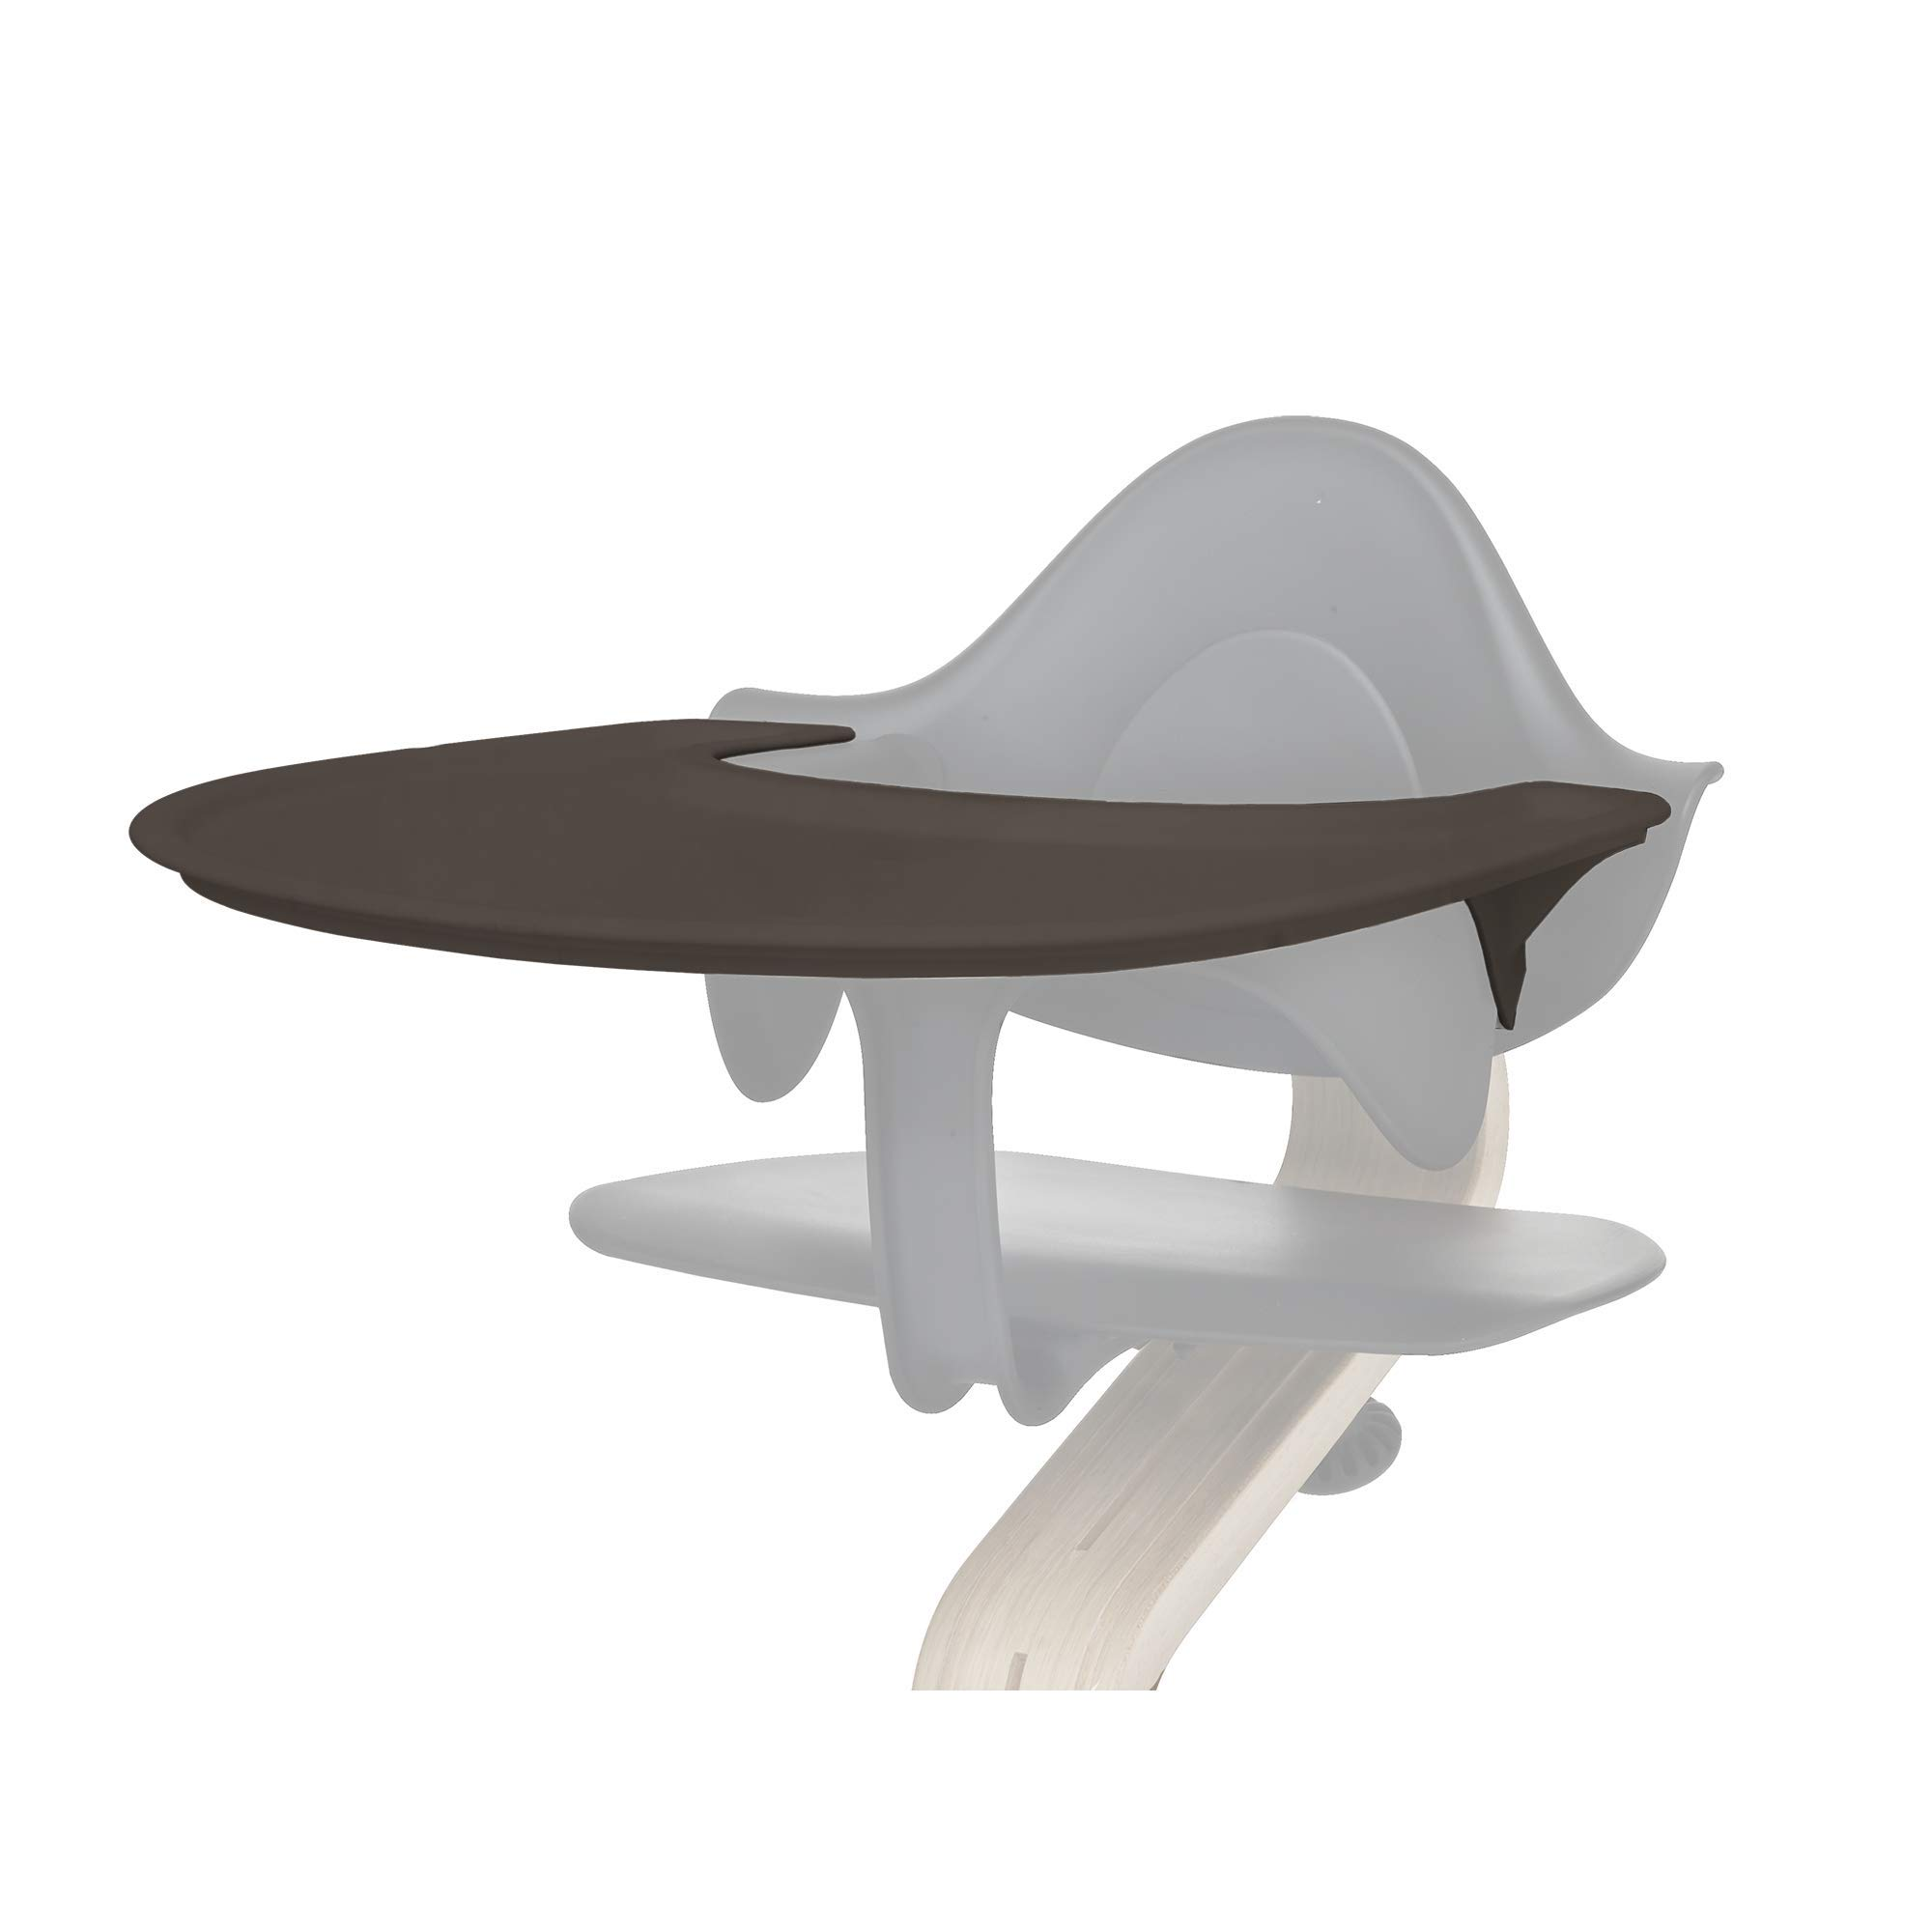 Tray by Evomove, Accessory for use with The Award Winning Nomi High Chair, Easy to Clean (Coffee)